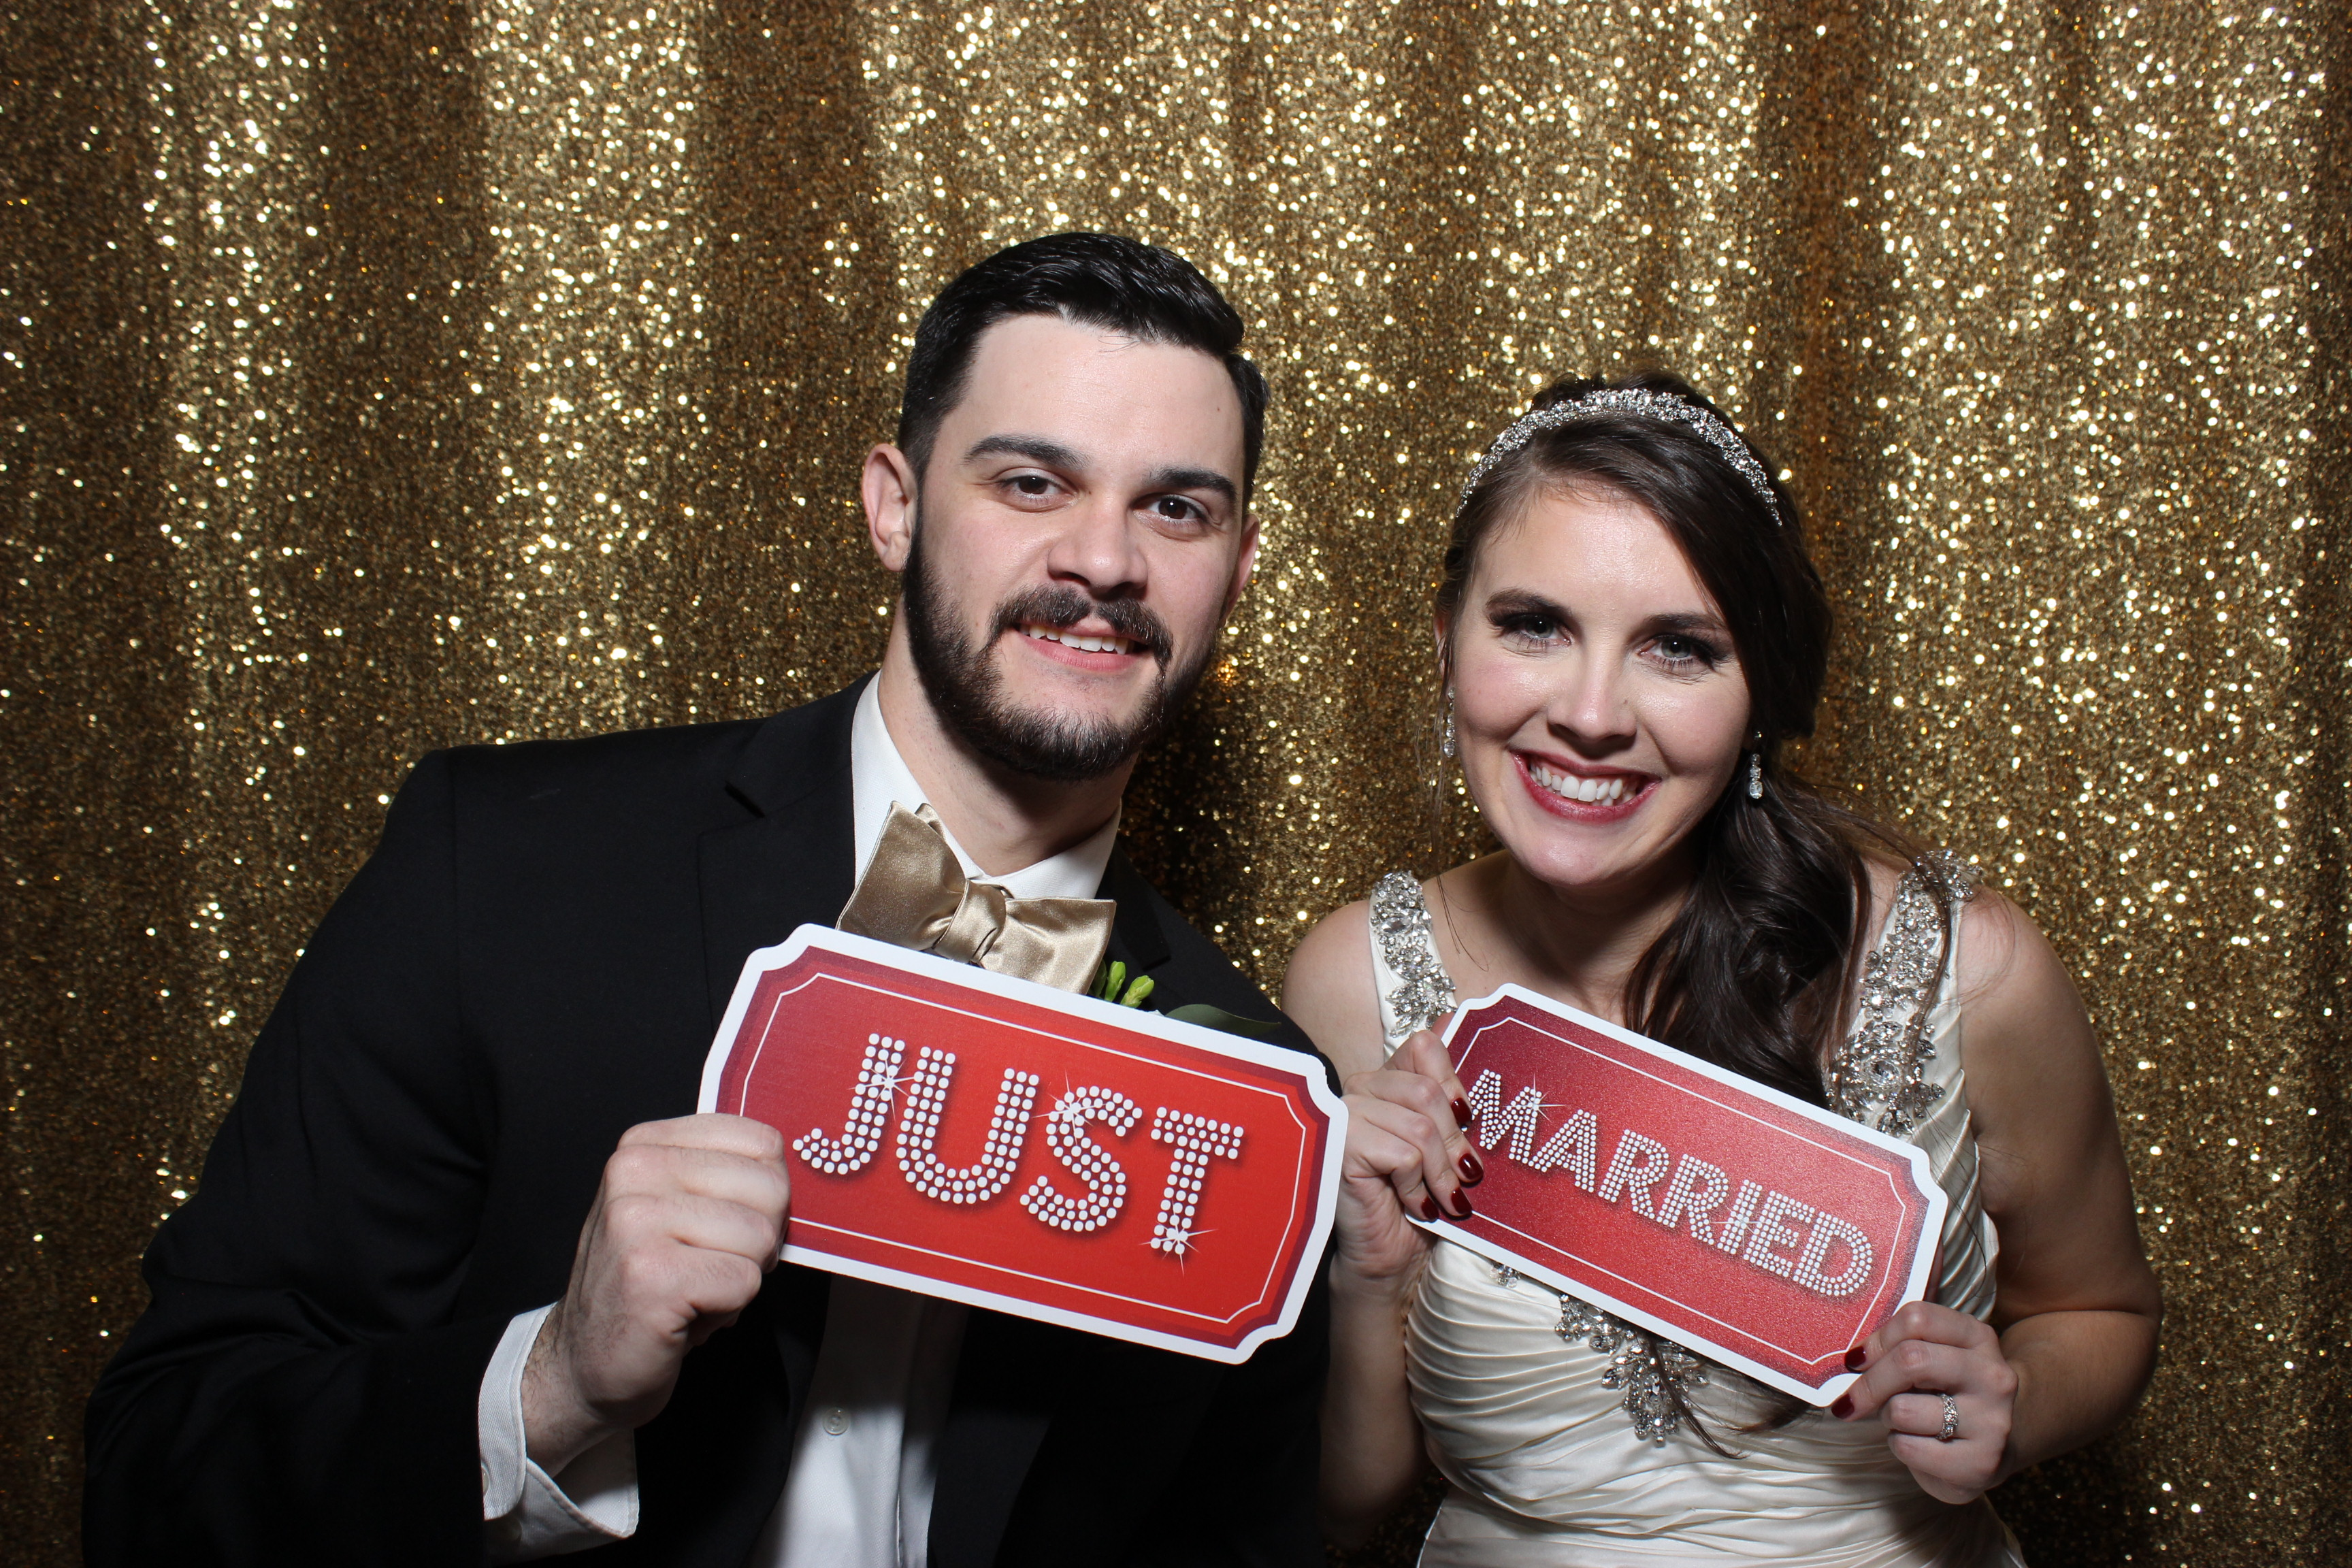 Amazing New Year's Eve Wedding and Photo Booth Fun